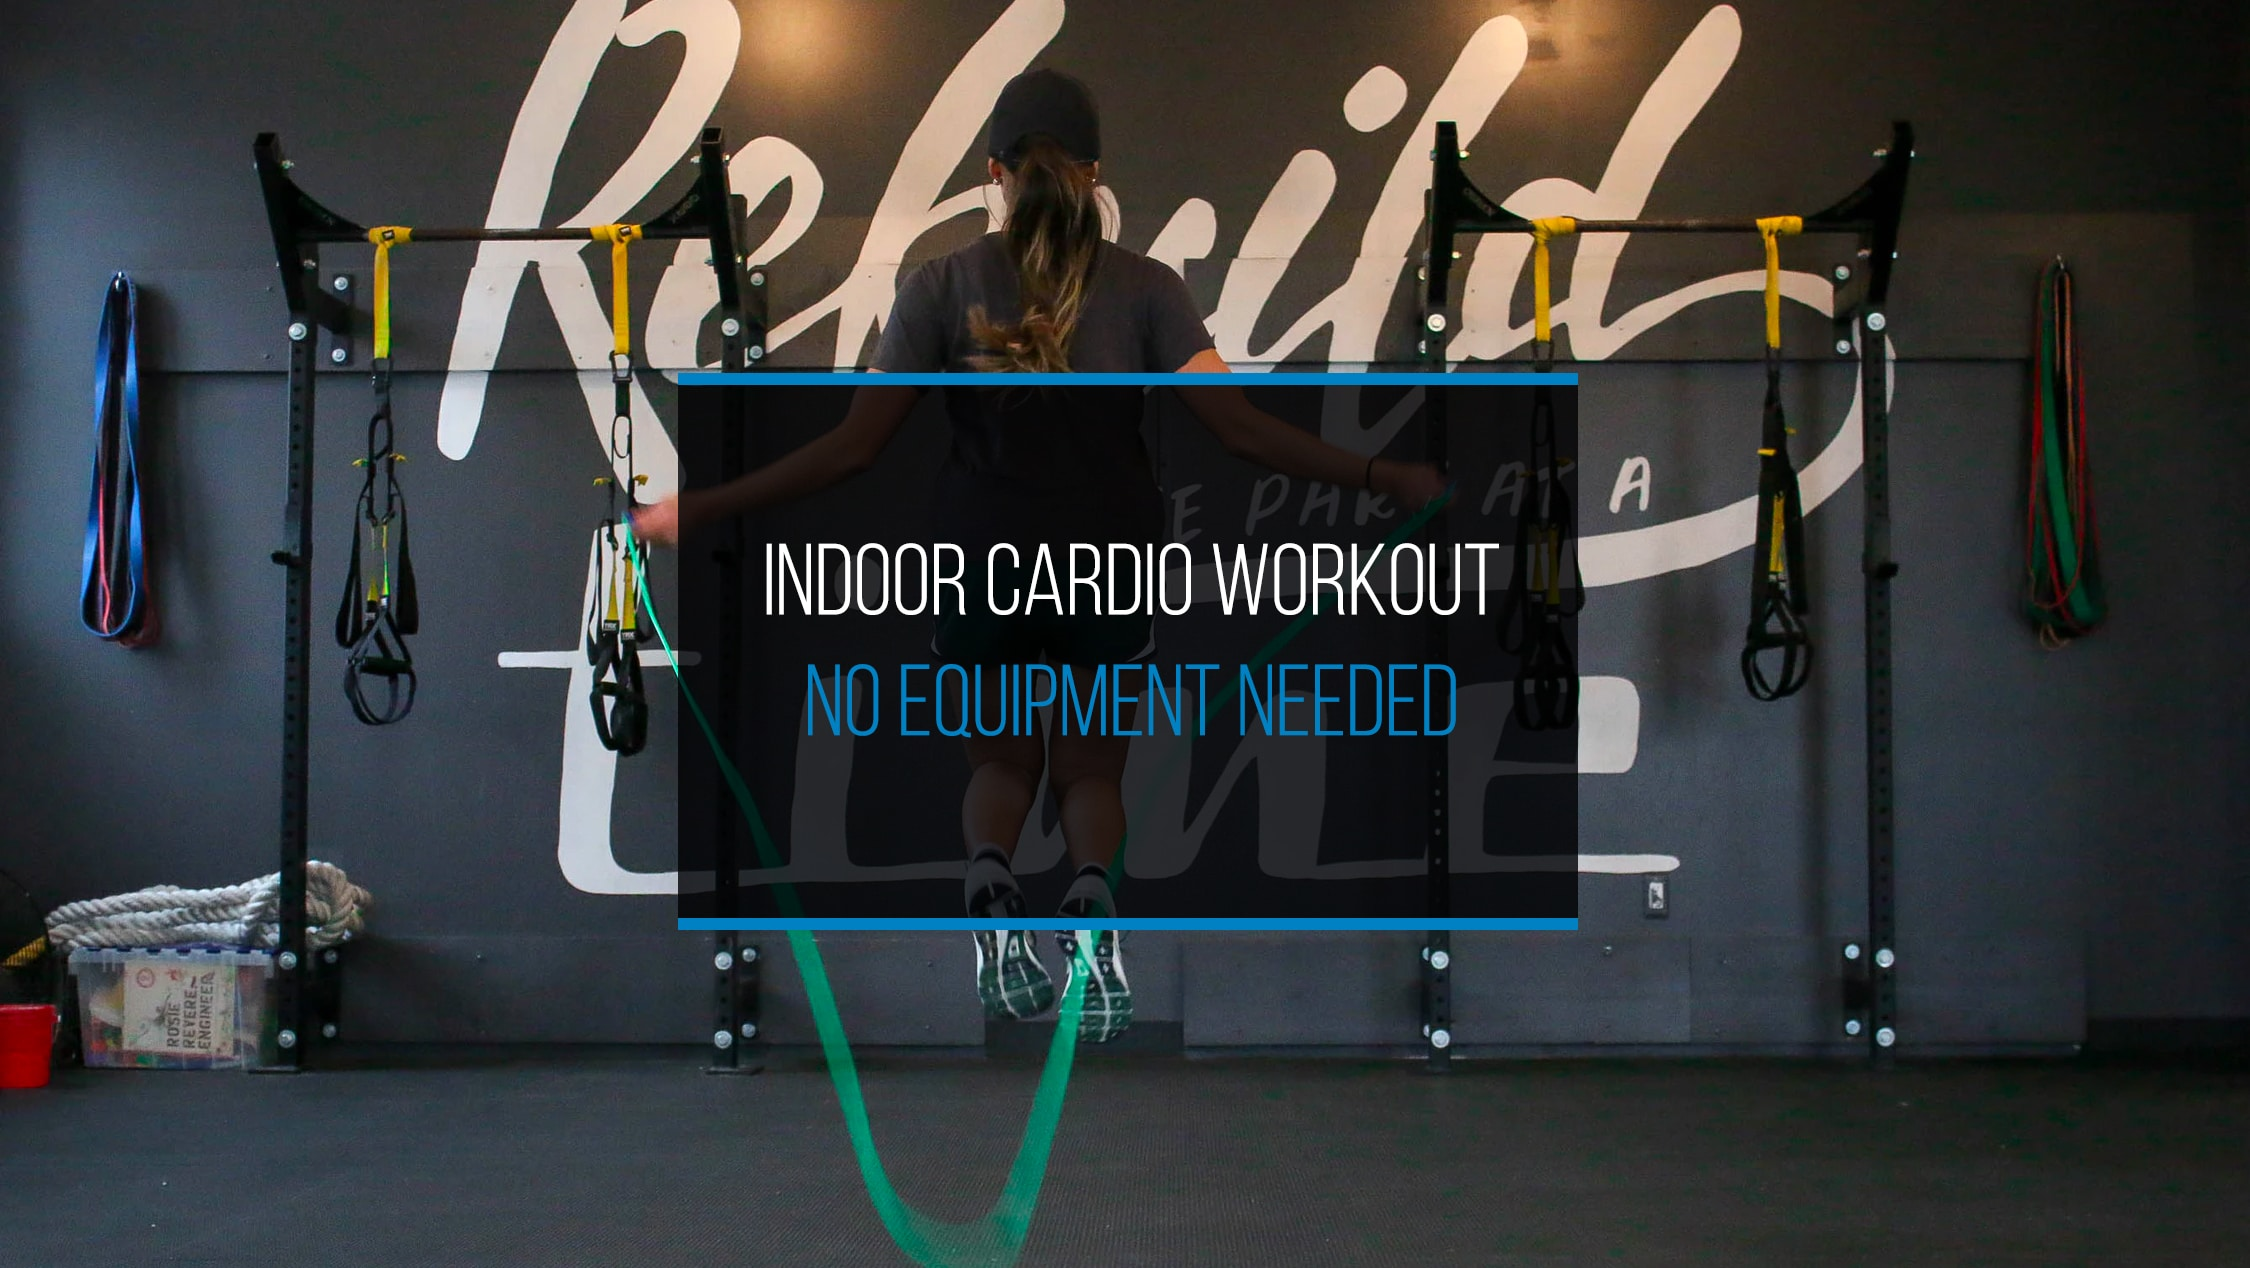 Indoor Cardio Workout - No Equipment Needed